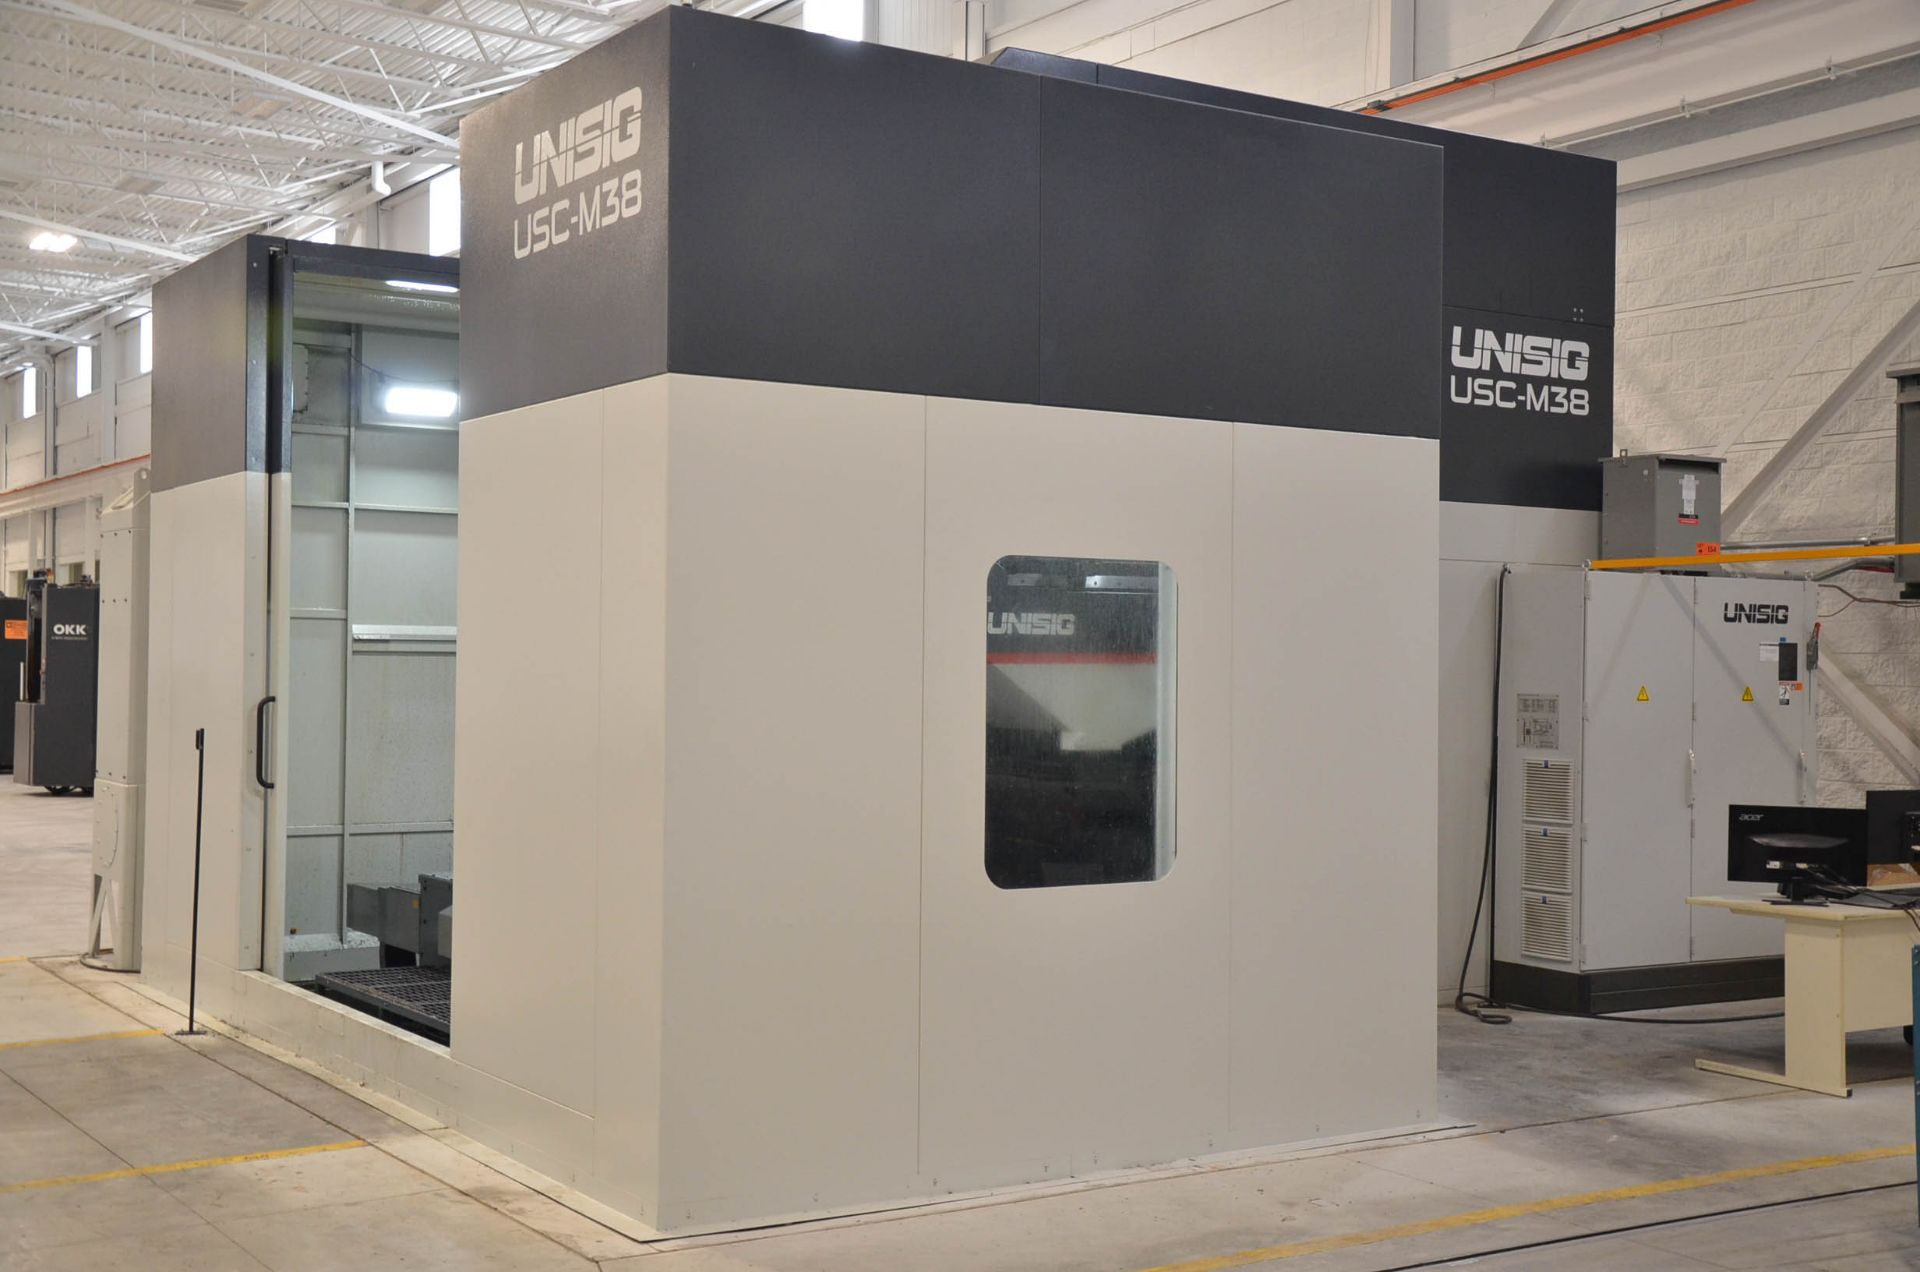 UNISIG (2020) USC-M38 5-AXIS COMBINATION CNC GUN DRILLING AND MILLING MACHINE WITH HEIDENHAIN ITNC - Image 5 of 17